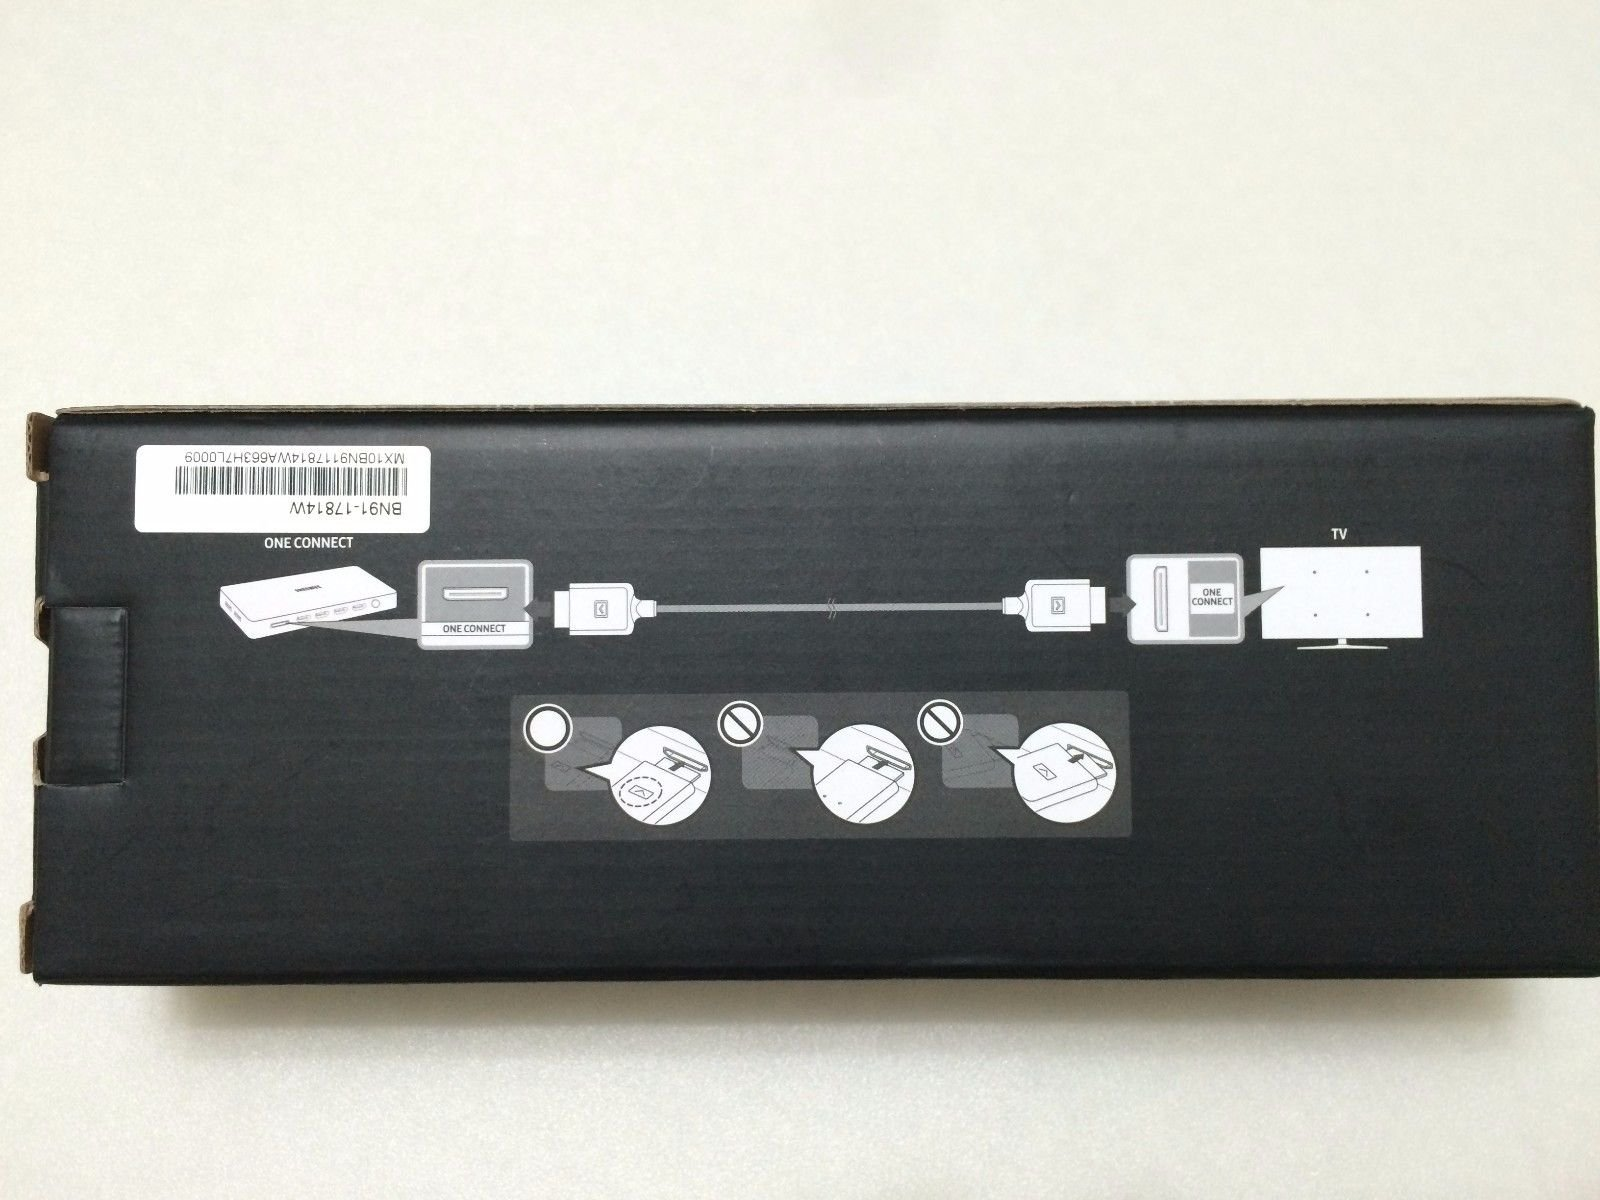 Samsung BN91-17814W ONE Connect, Fixing-JACKPACK, Y16 OCM by Samsung